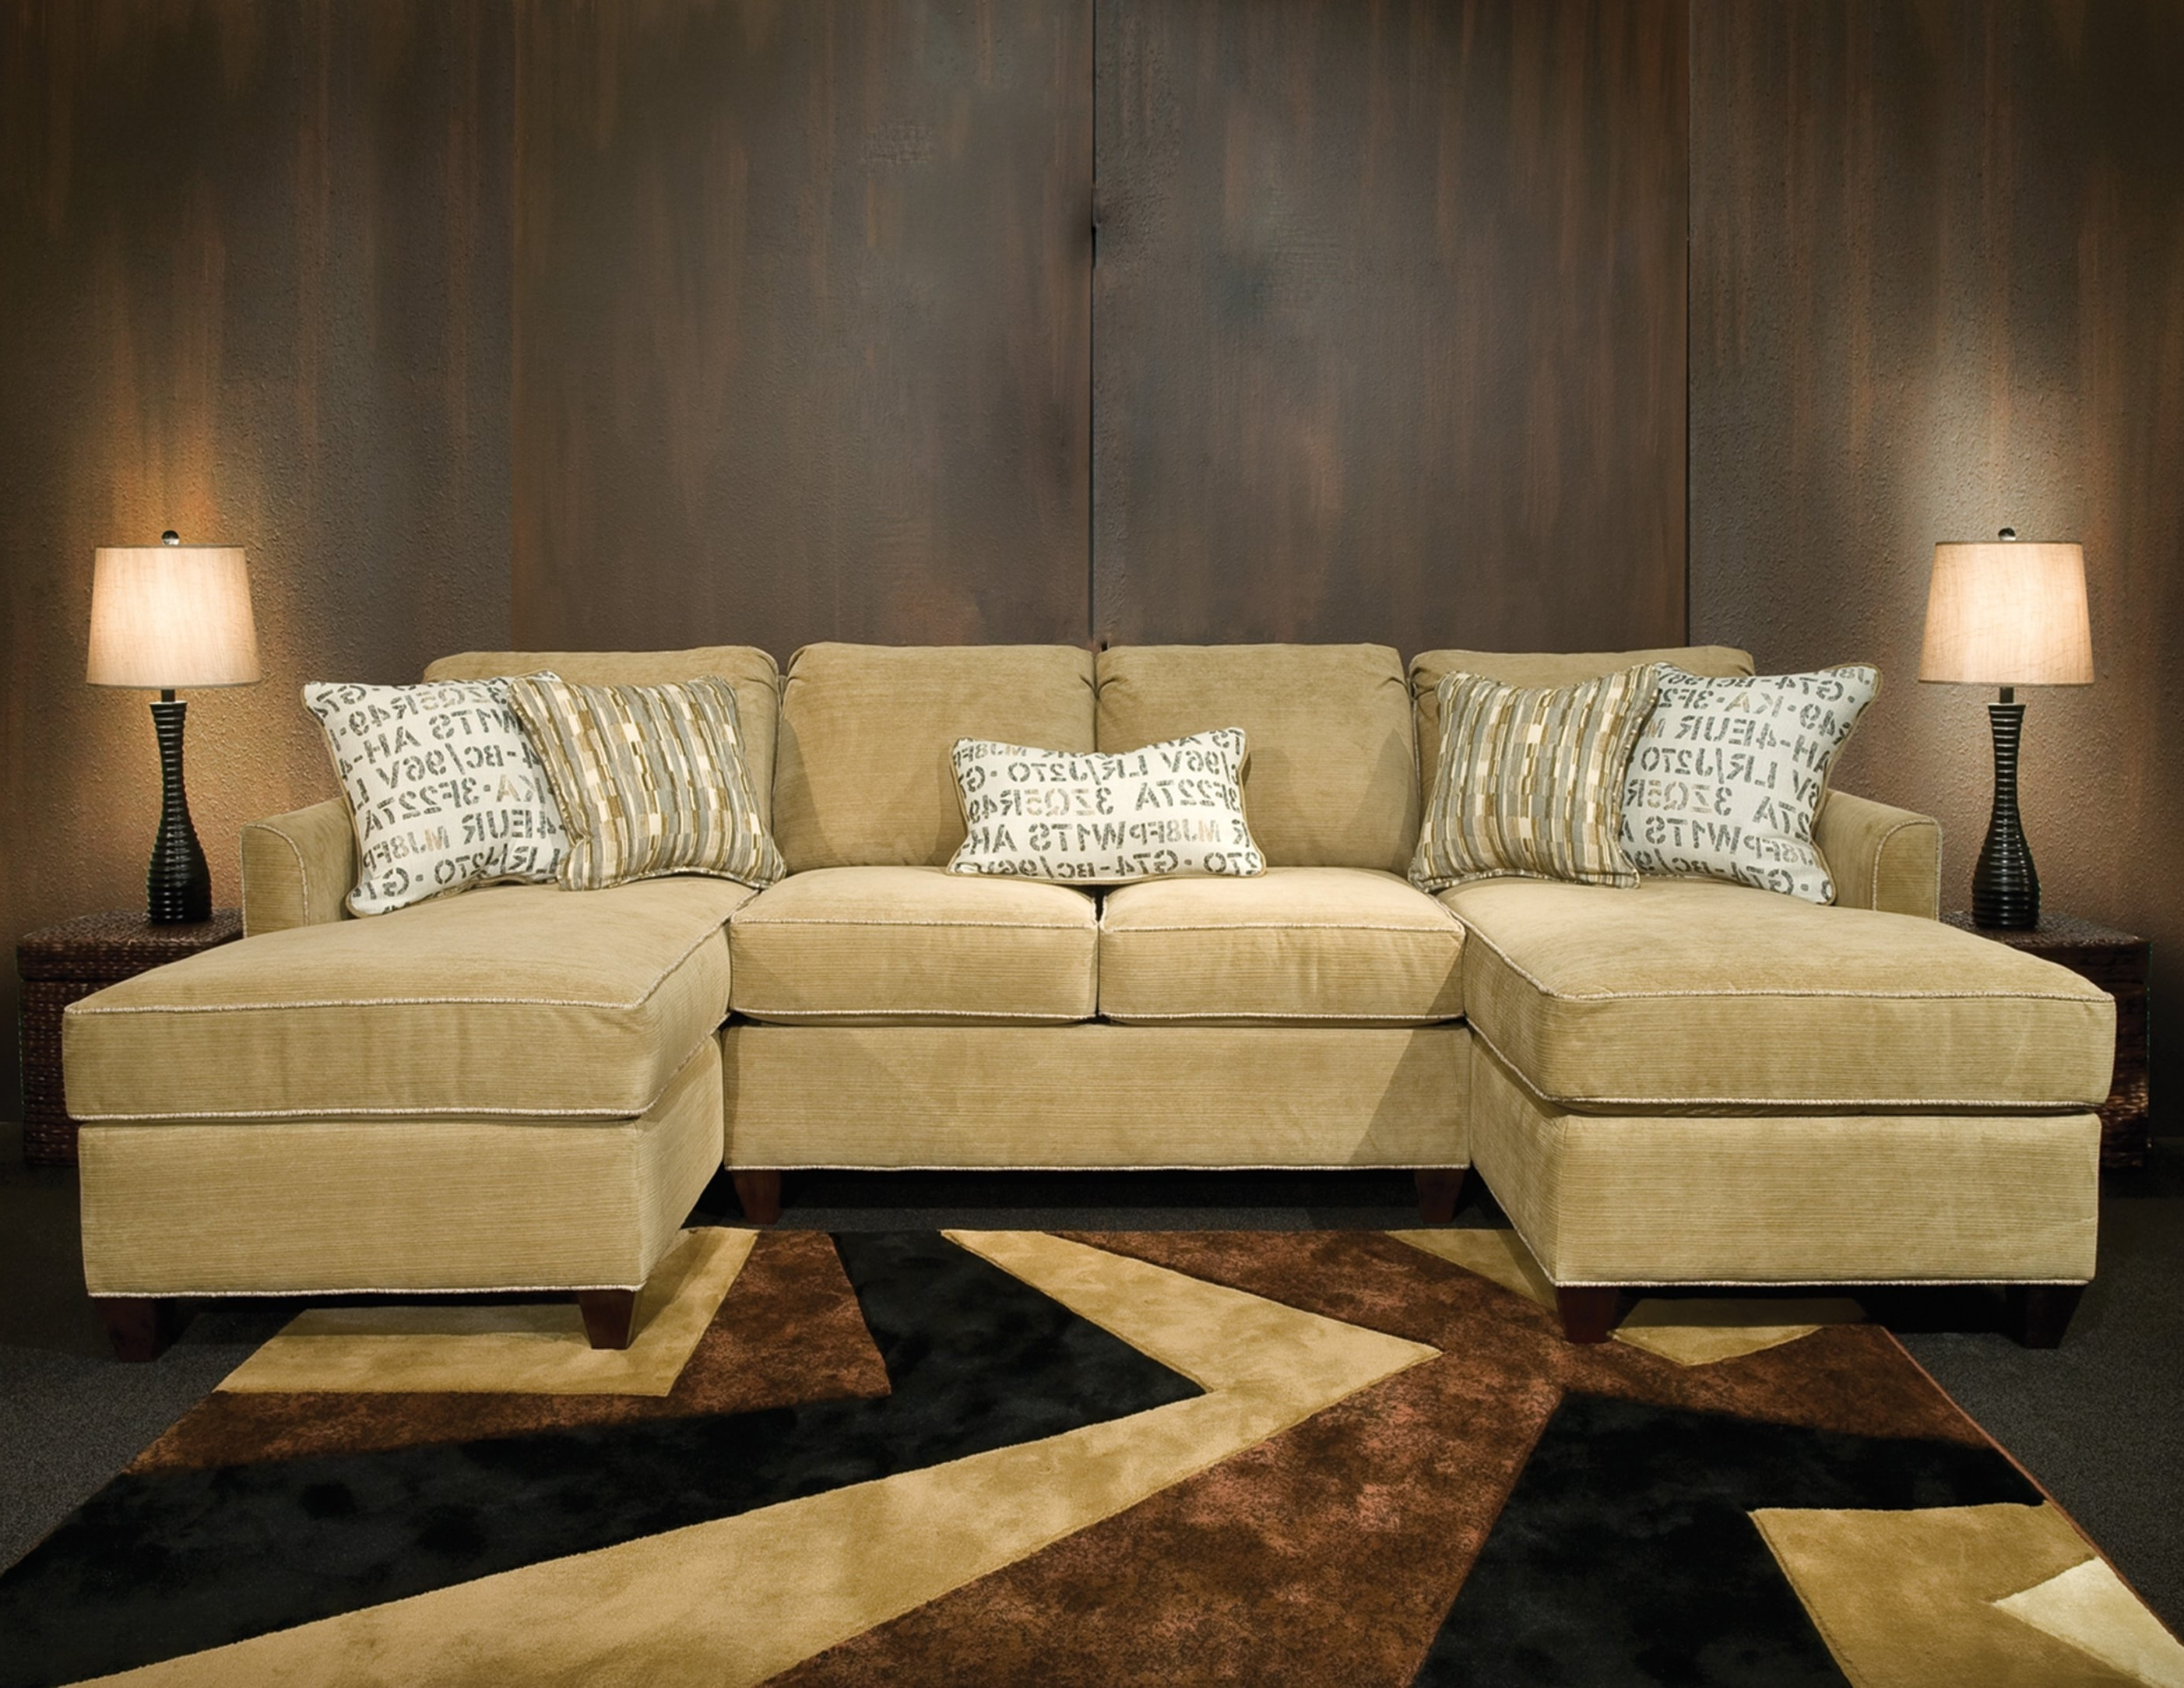 Recent Double Chaise Lounge Sofa 15 In Sofas And Couches Ideas Regarding With Regard To Double Chaise Lounge Sofas (View 5 of 15)